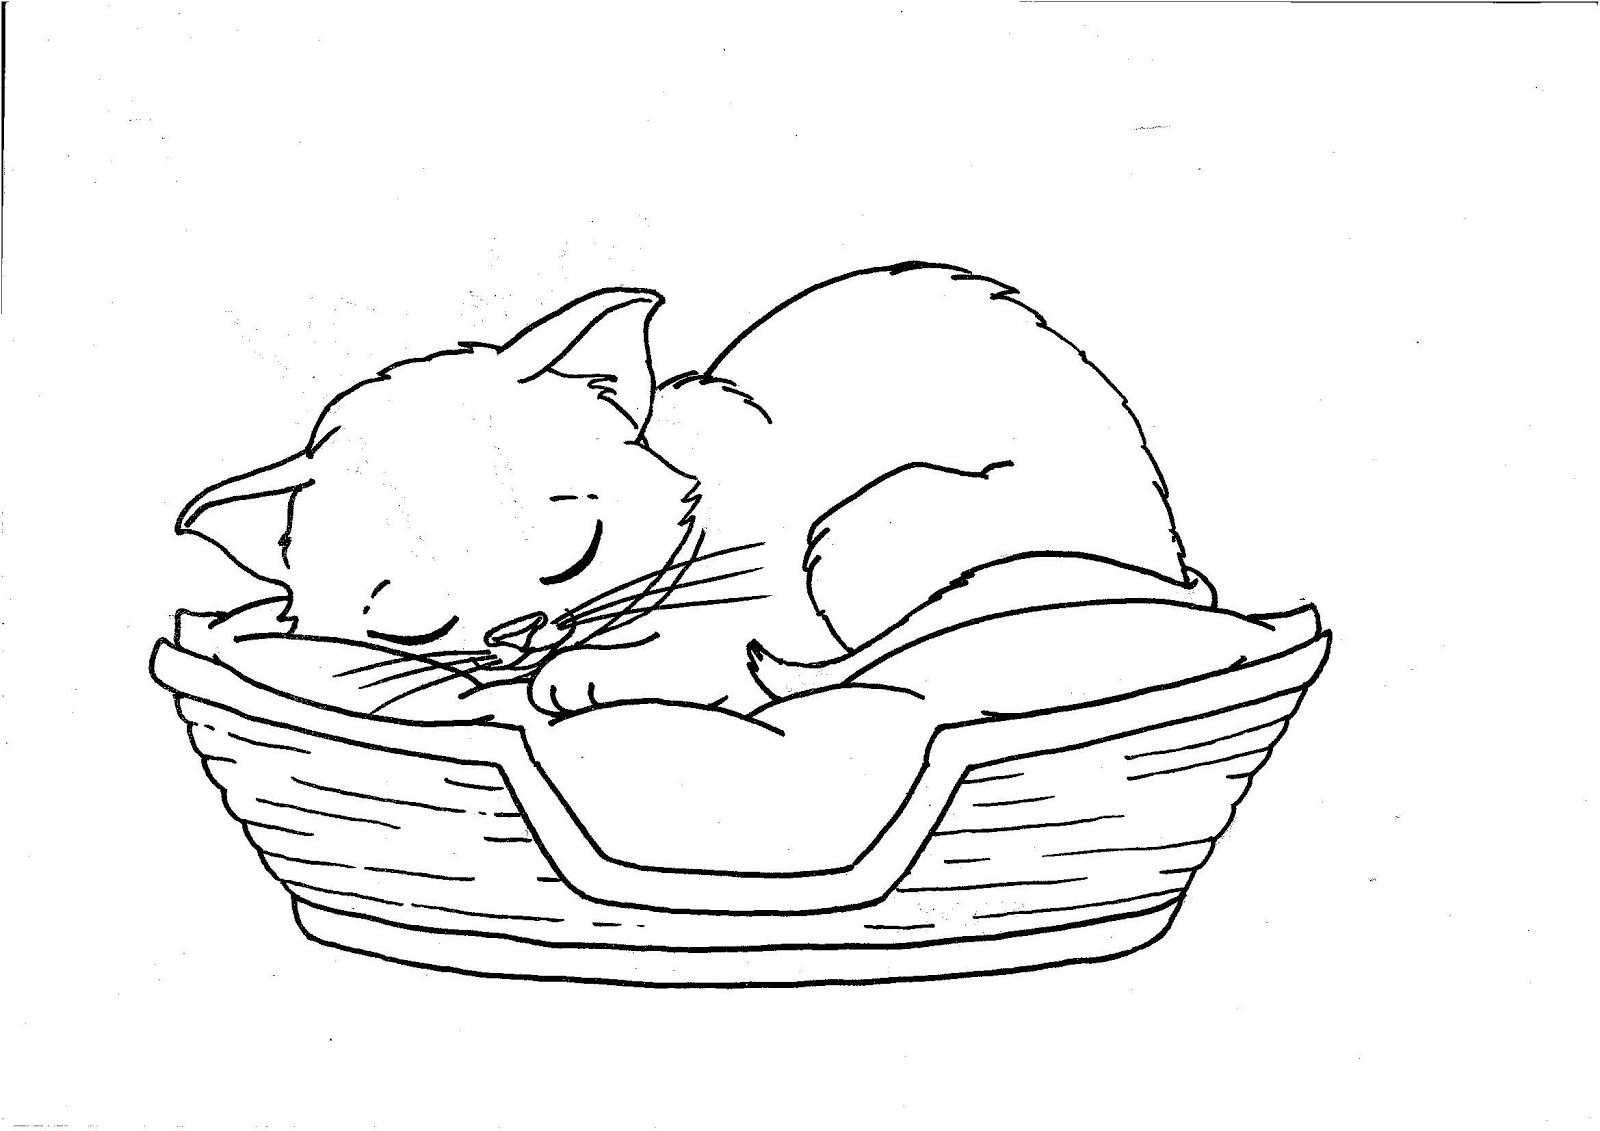 Coloring Kitten Pages Sleepi And For Kids Sleeping